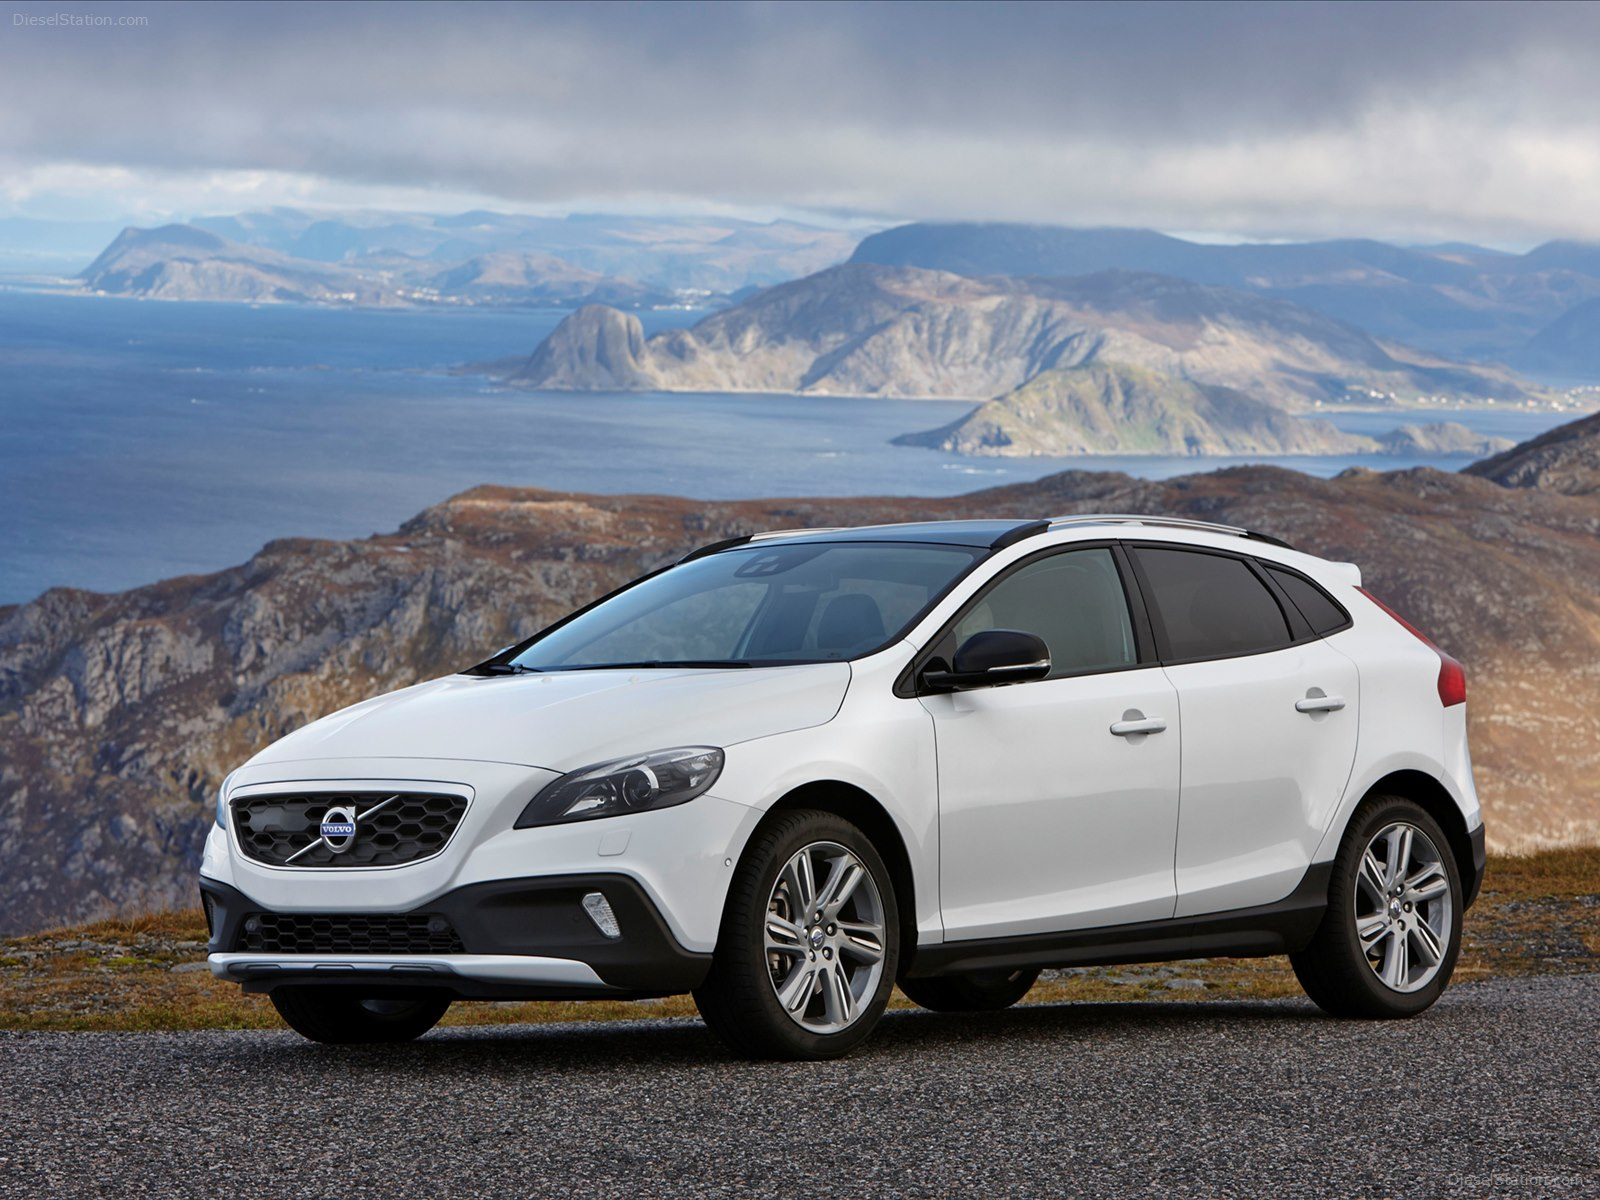 Volvo V40 Cross Country 2014 Exotic Car Wallpapers 08 of 24 1600x1200